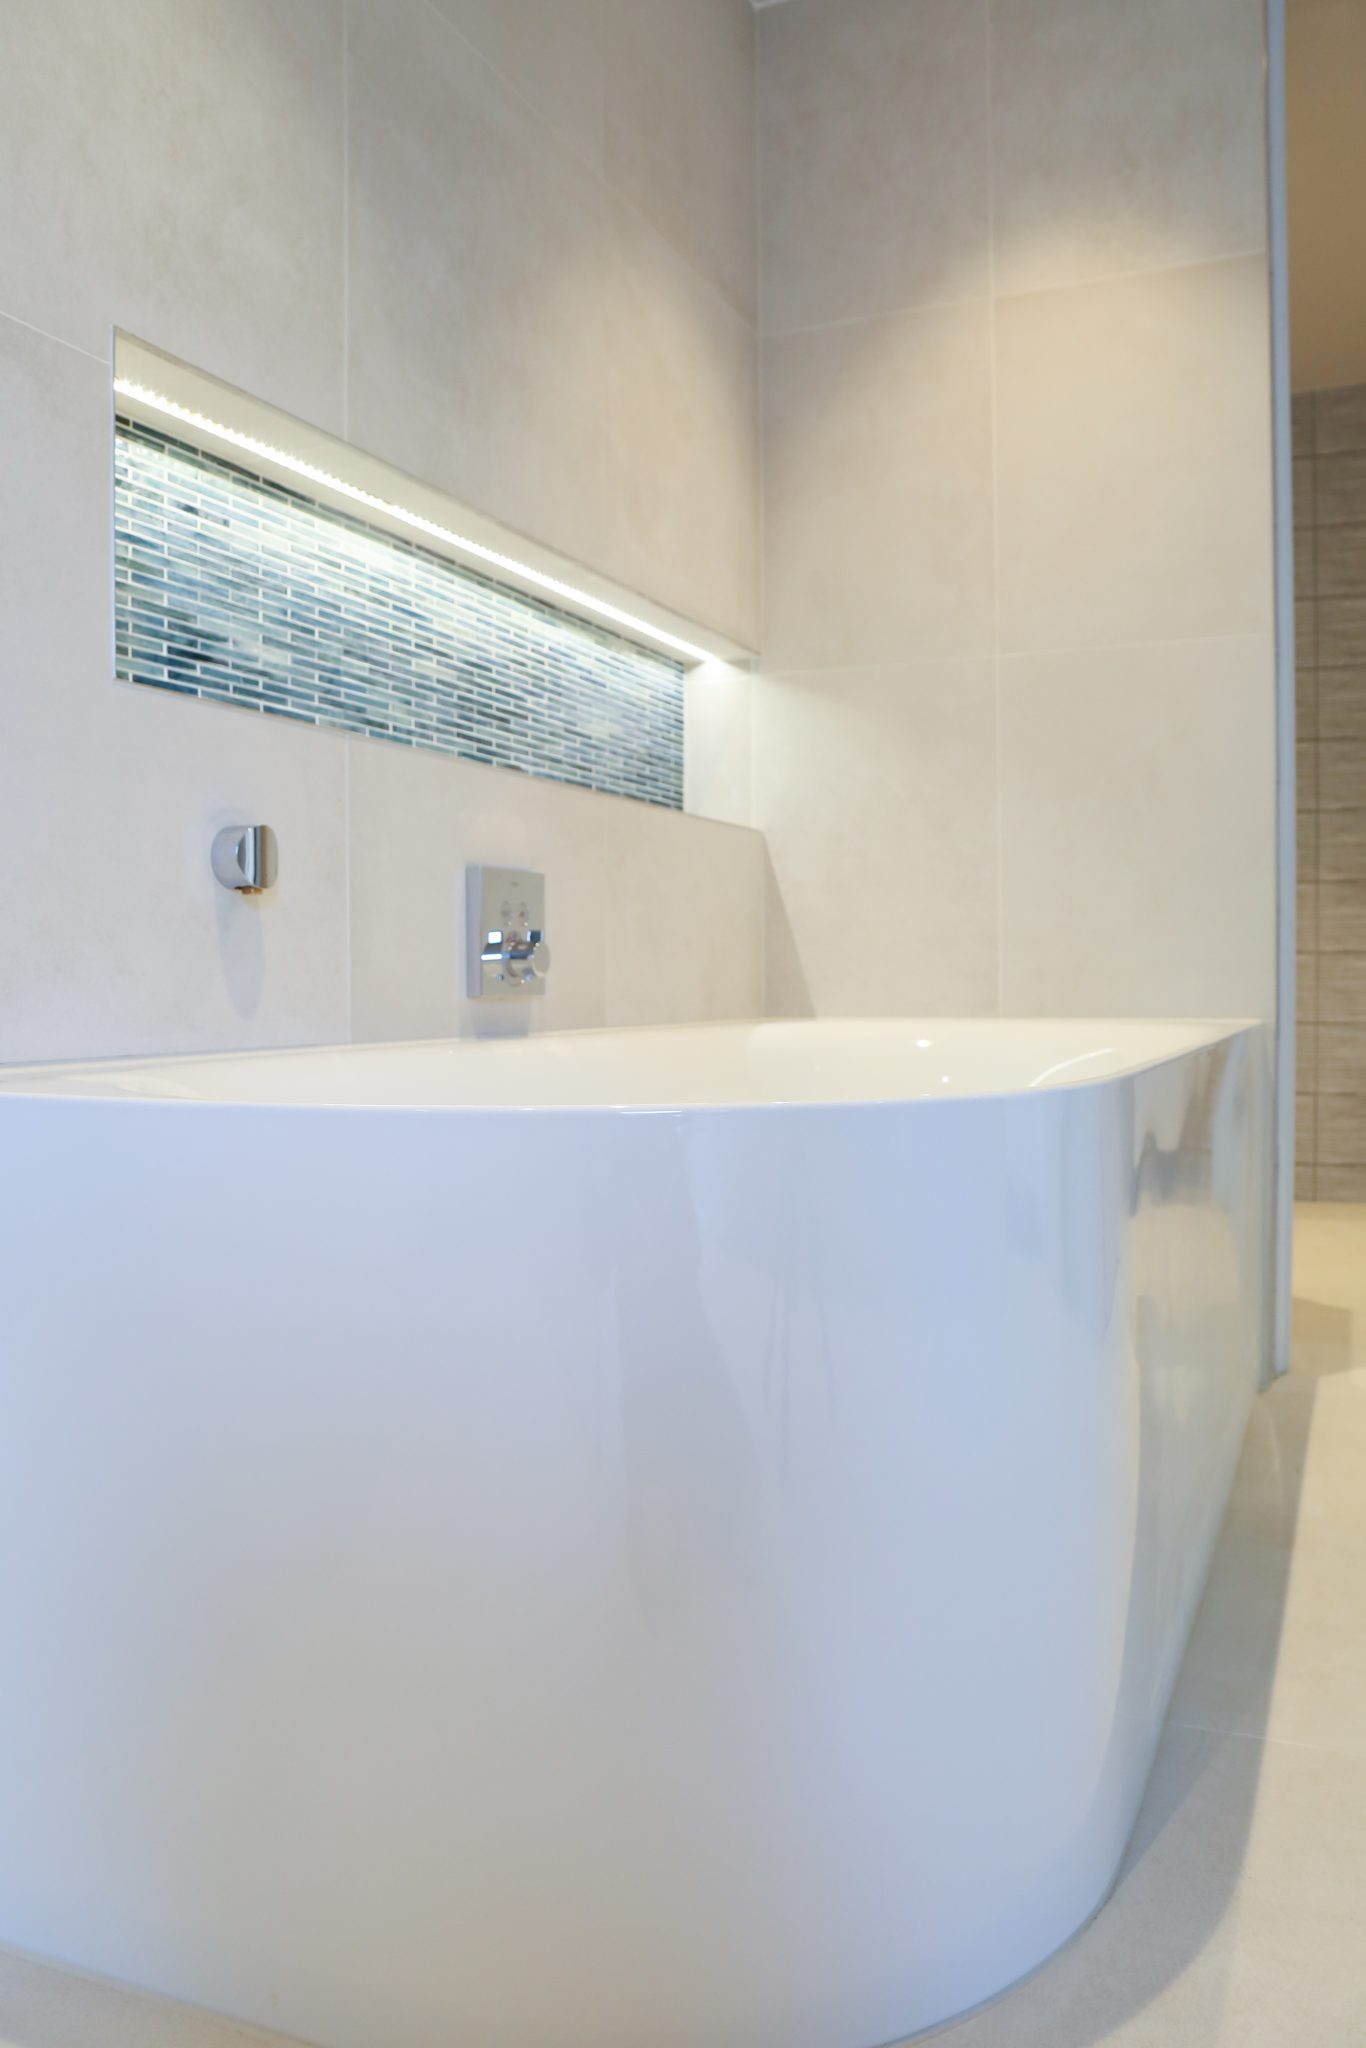 LEATHWAITE ® | MASTER BATHROOM SUITE |